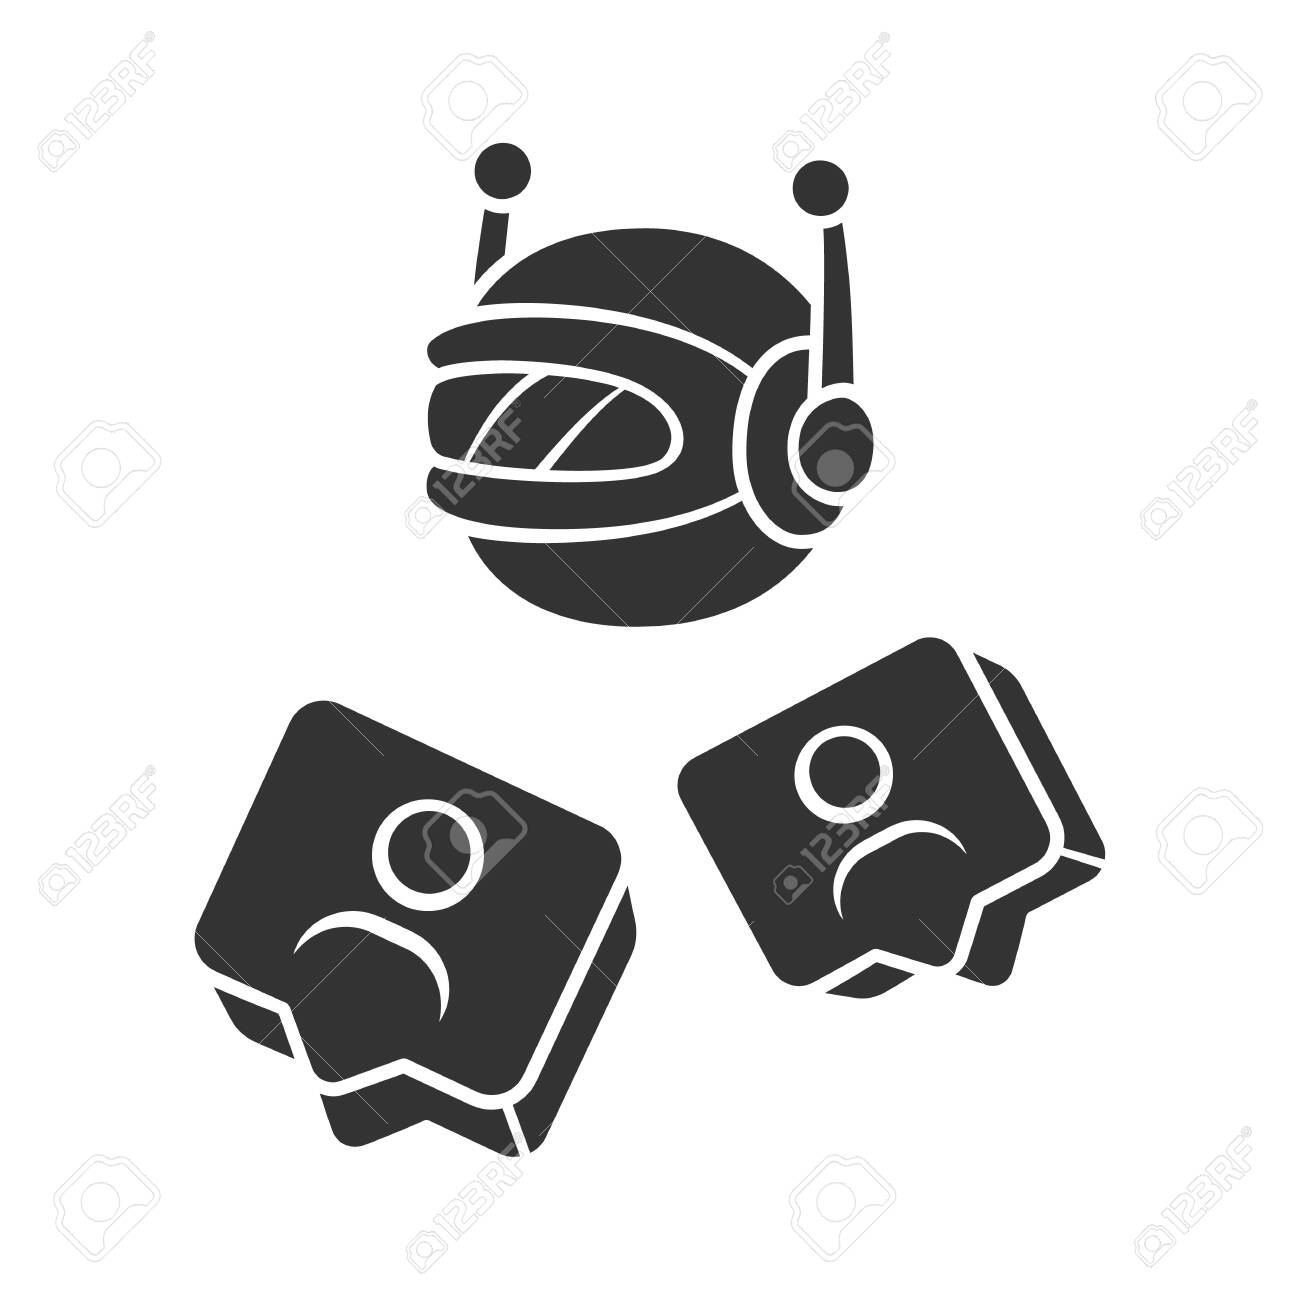 Social bot glyph icon  Socialbot, chatbot  SMM automation tool